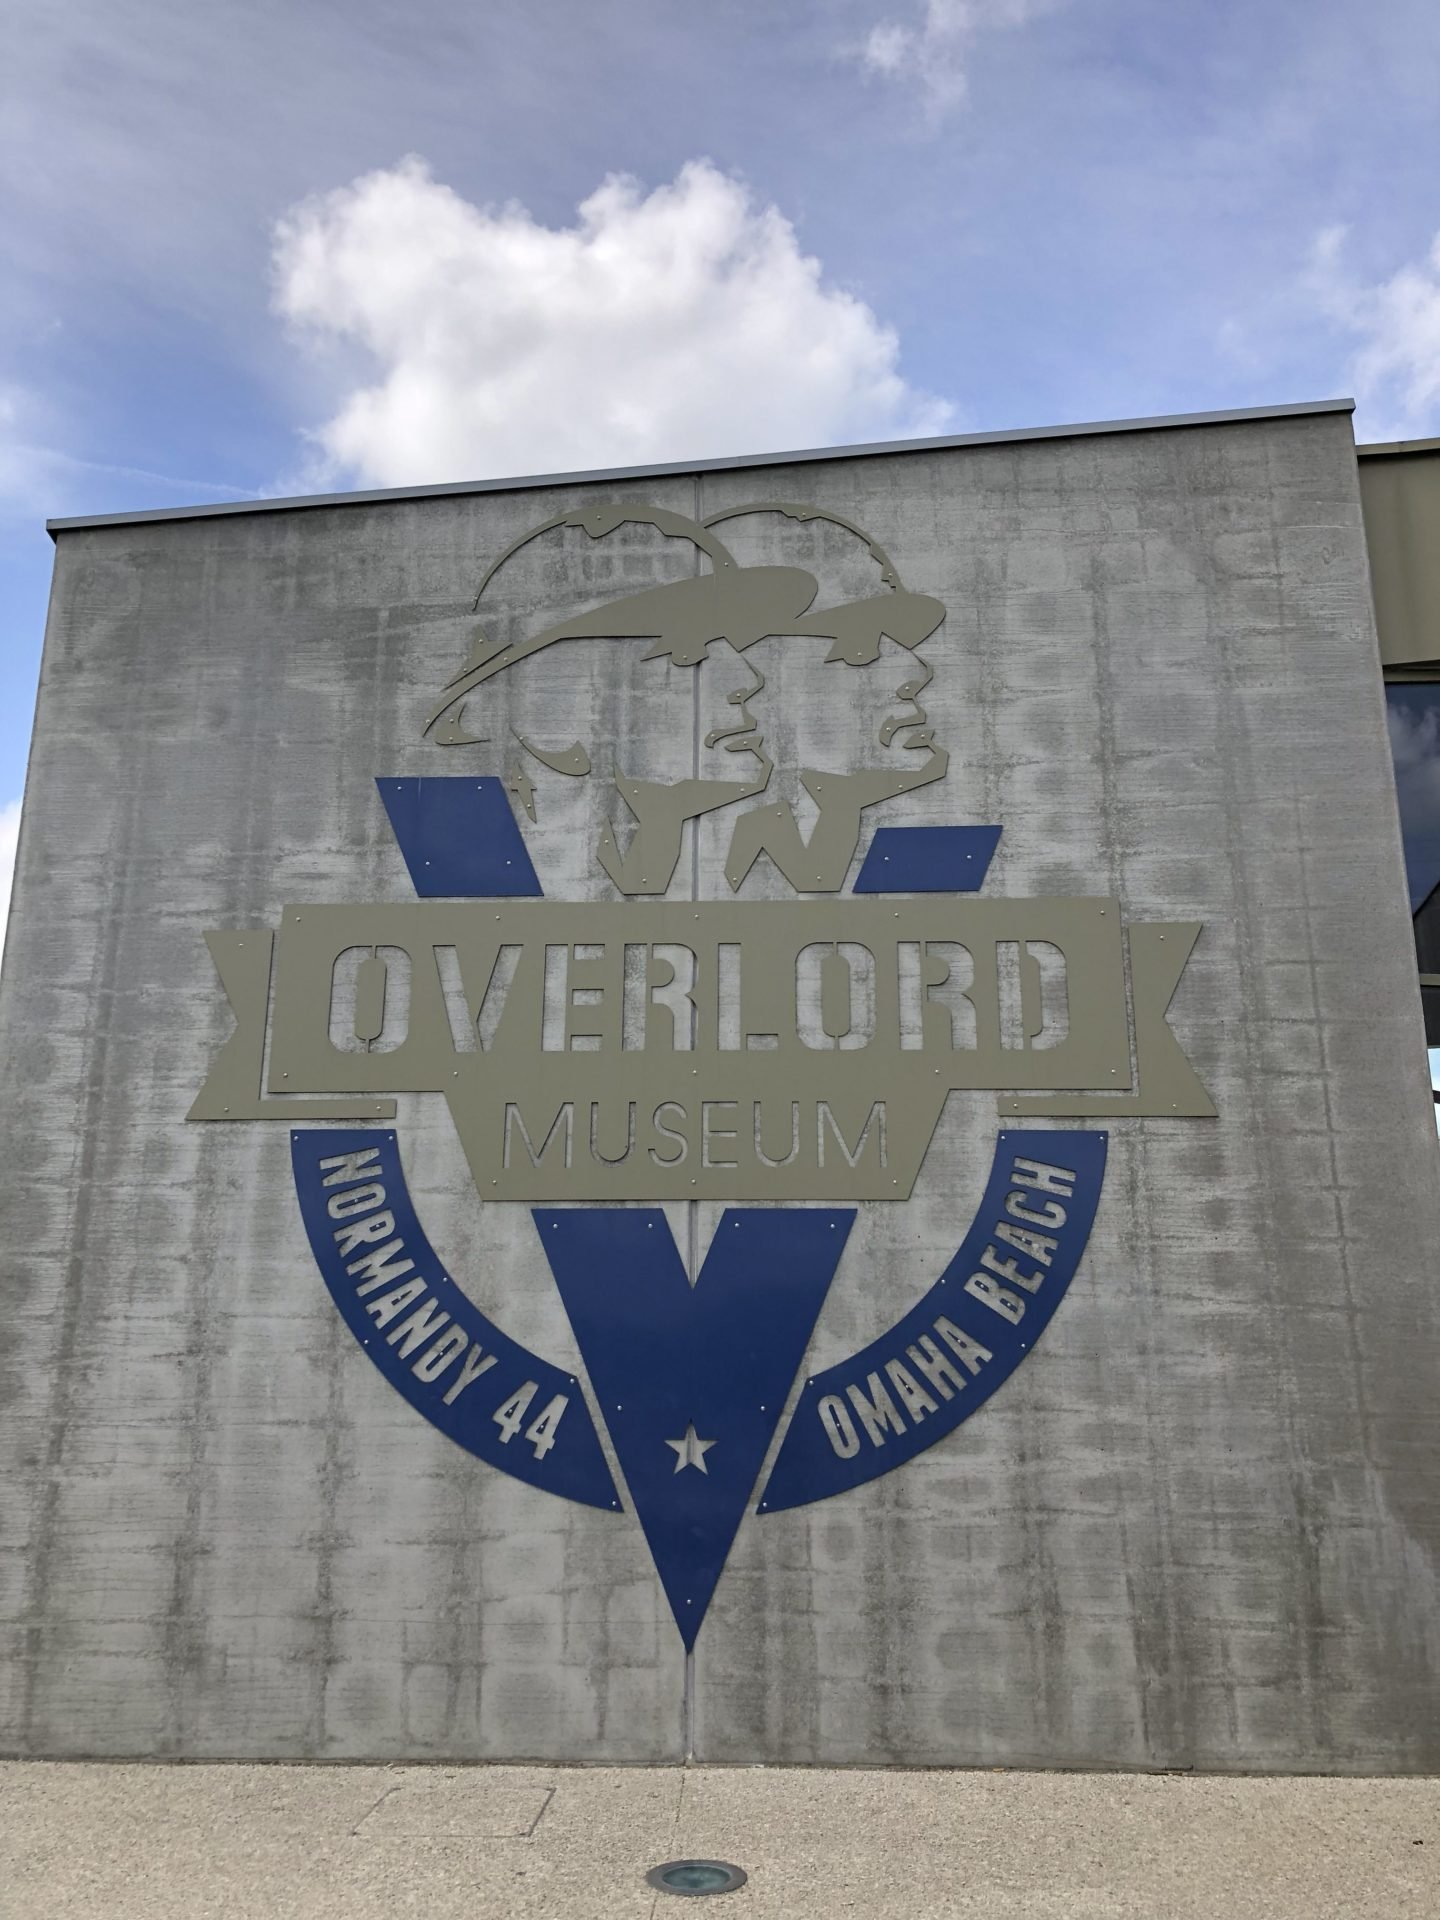 The Overlord museum is directly opposite the site of the Normandy American Cemetery. It contains a large collection of tanks, aircraft and smaller items. The collection of Michel Leloup was largely found on Normandy soil and took around 40 years to collect.